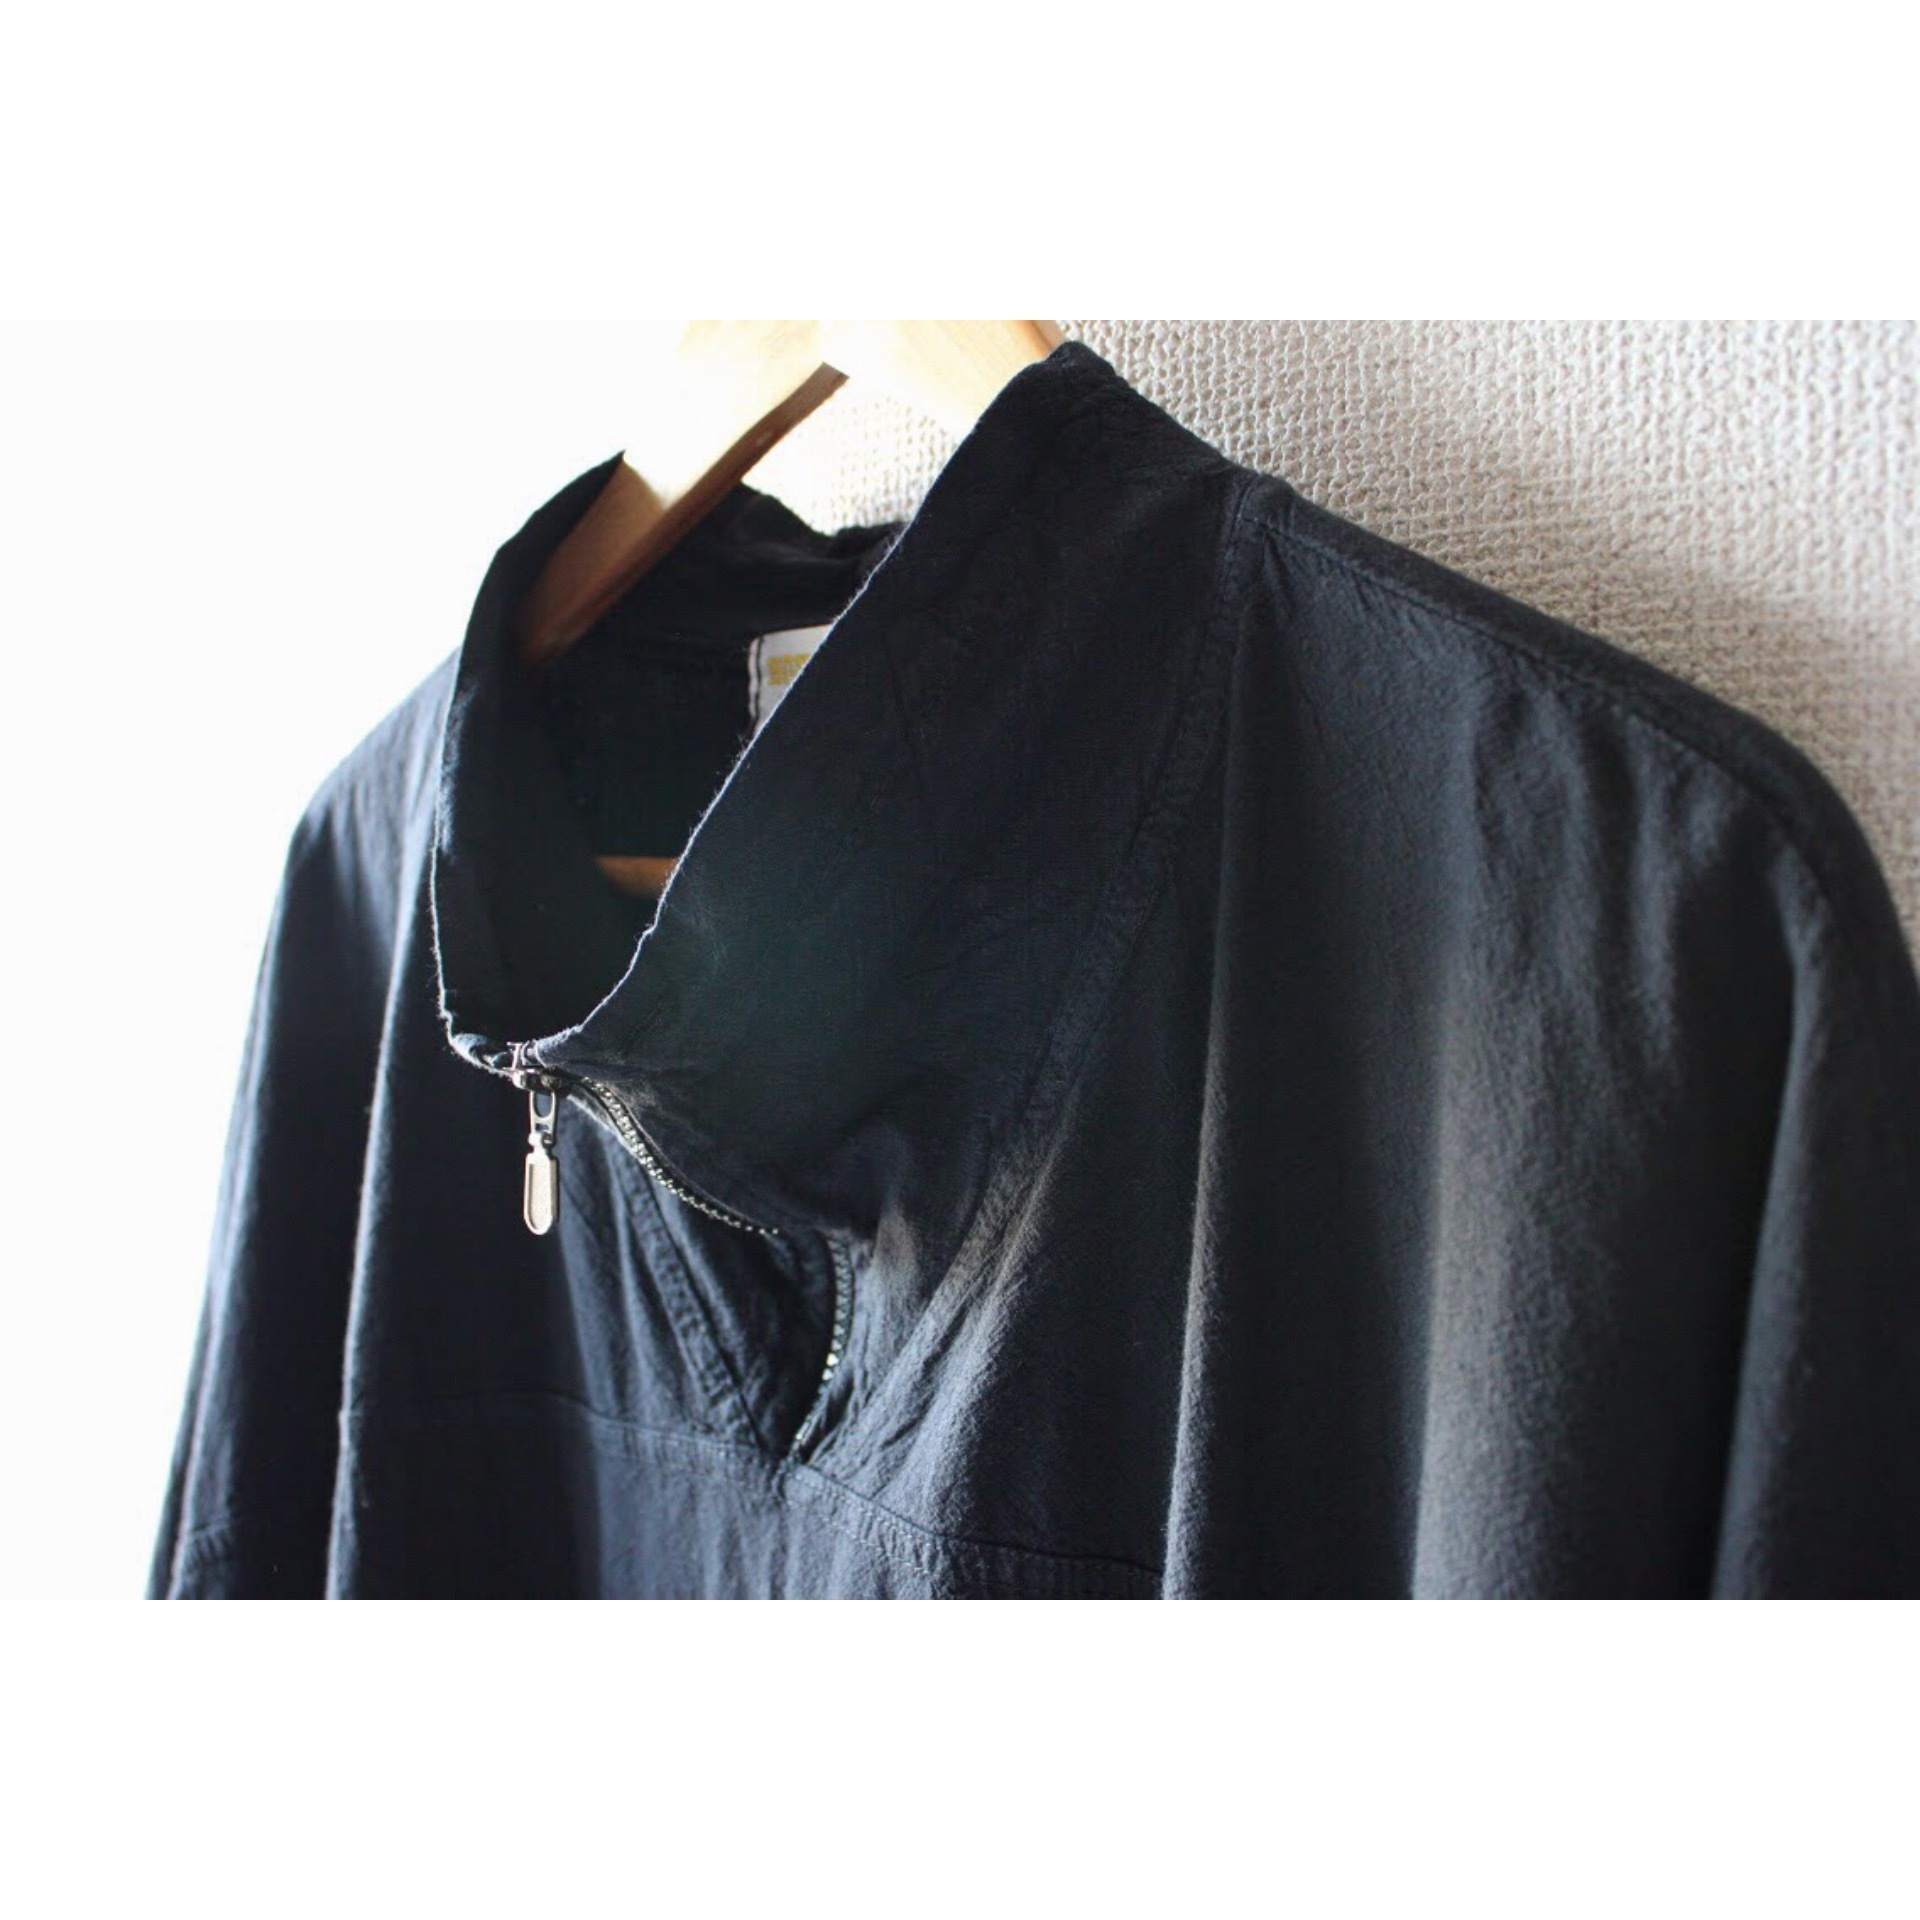 Vintage over sized pull over shirt